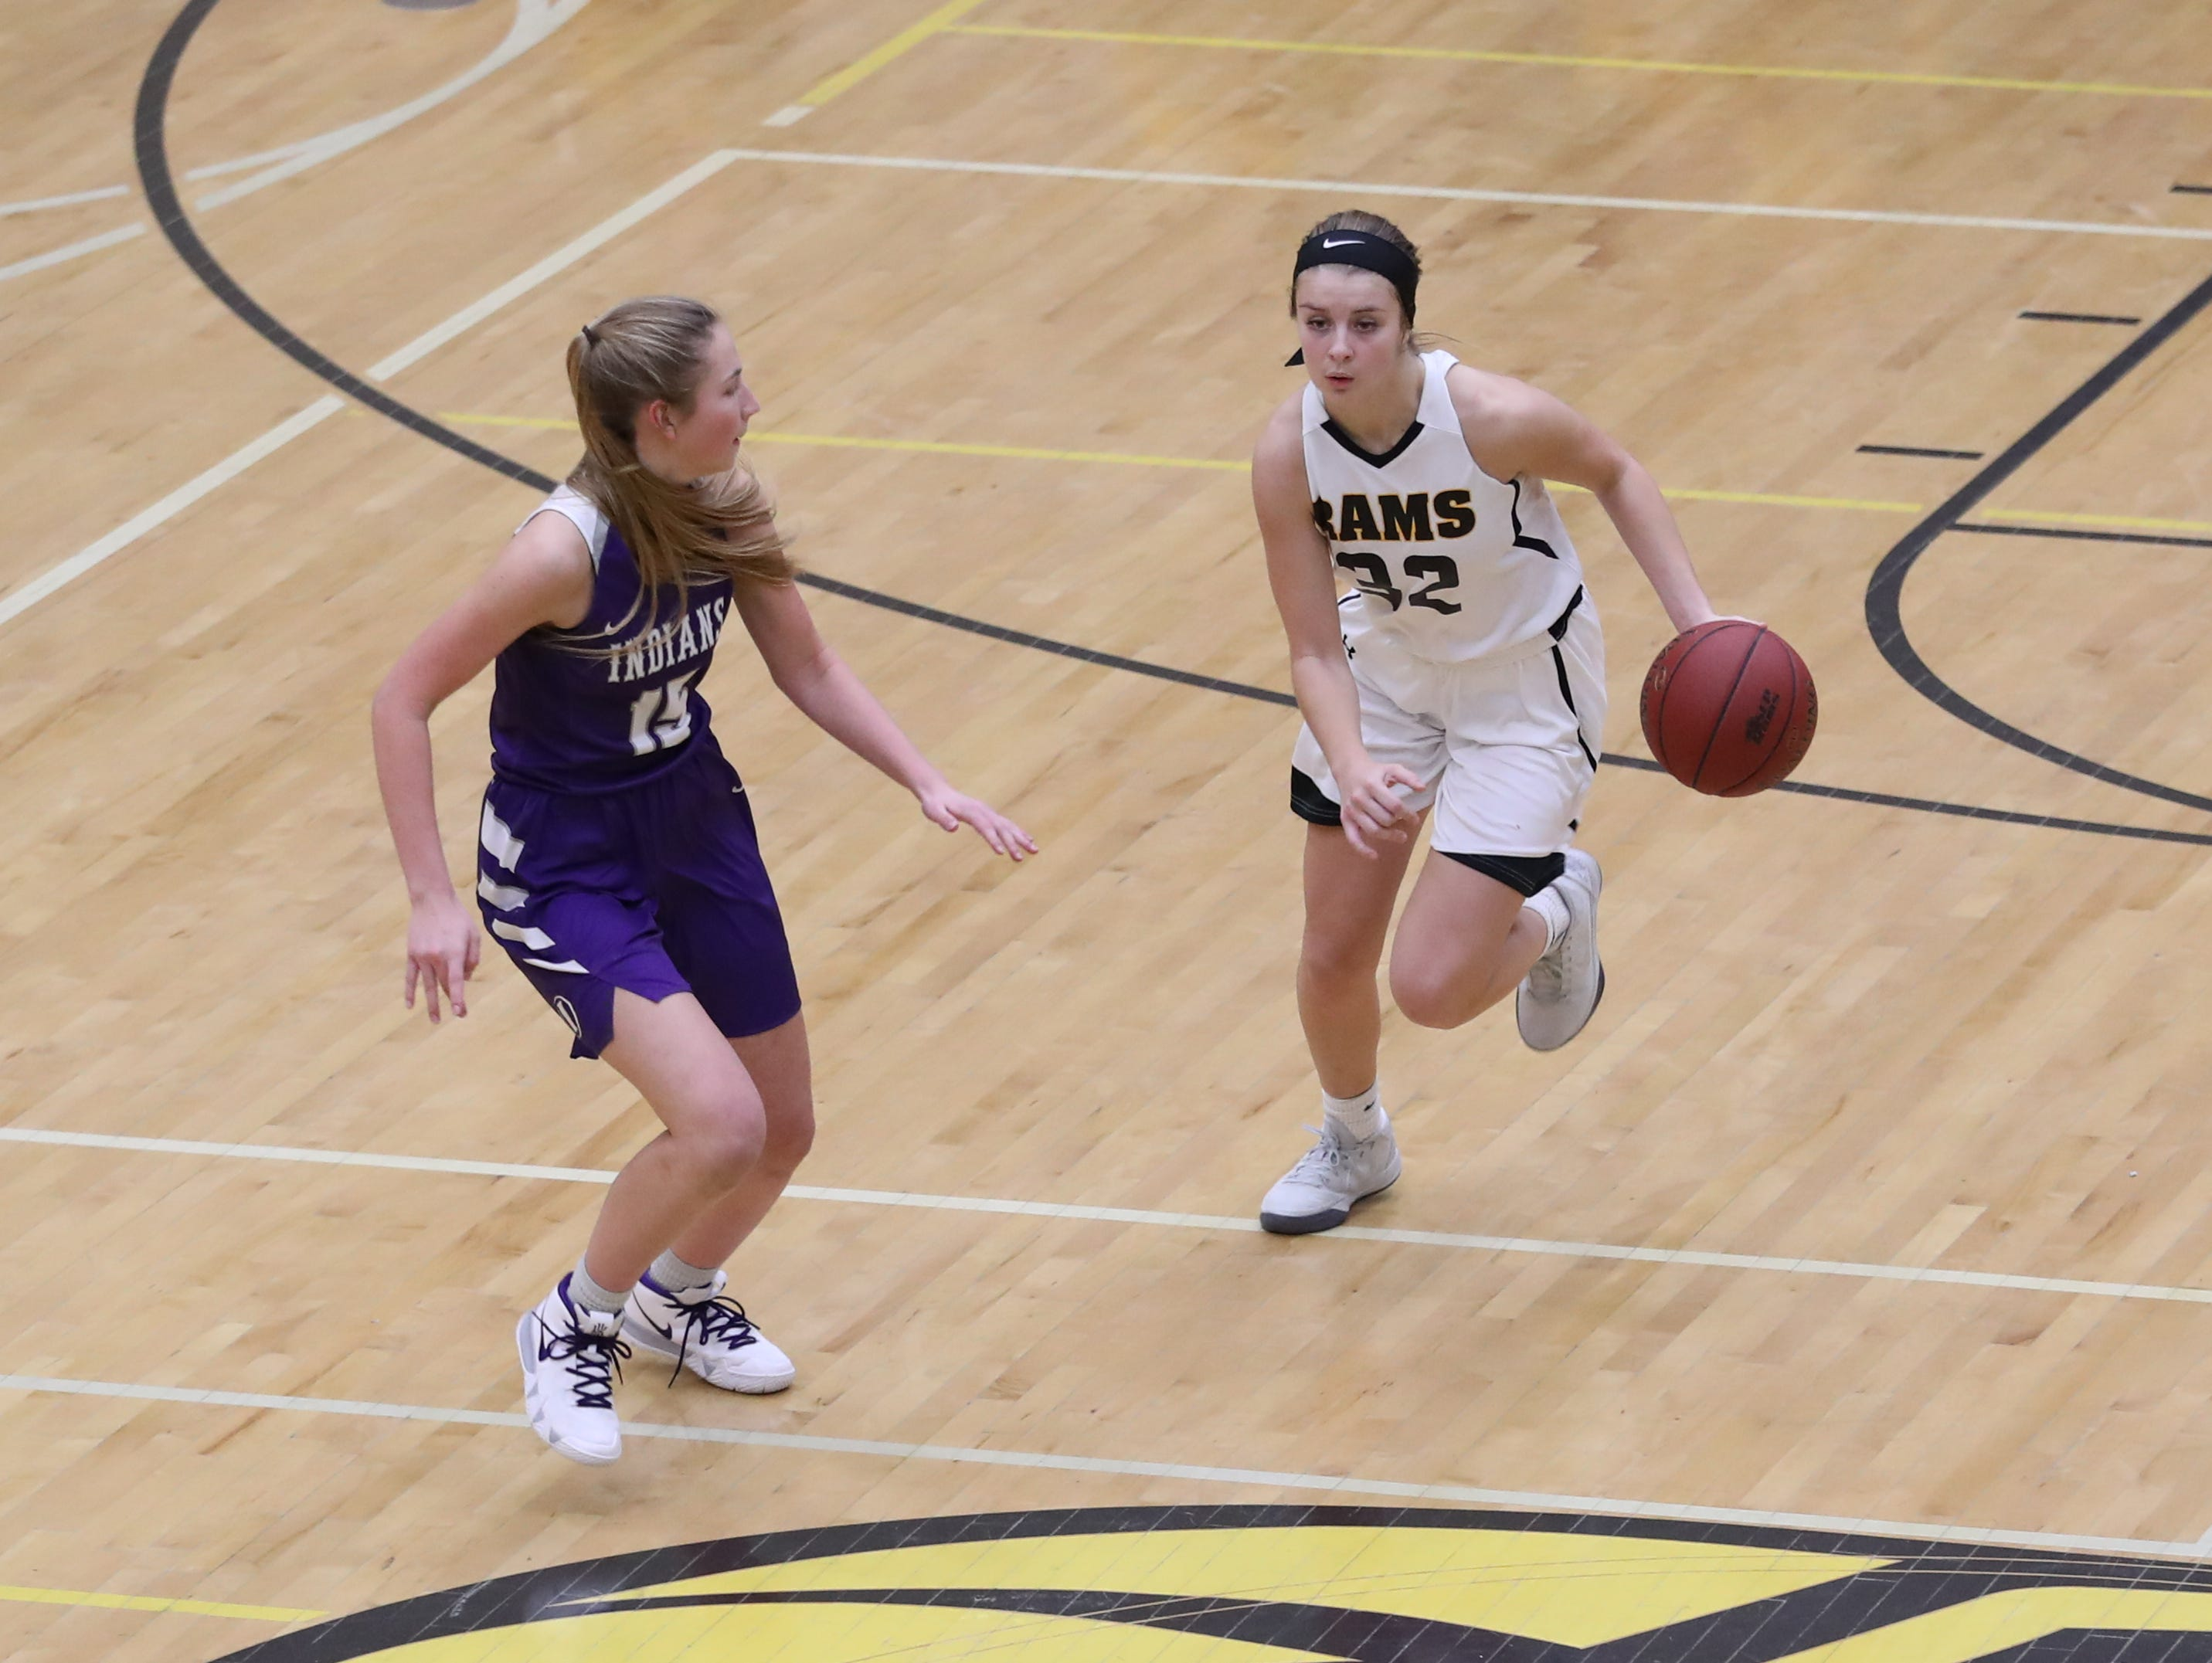 Nov 20, 2018; Pleasant Hill, IA, USA; Southeast Polk Rams Maggie McGraw (32) brings the ball up the court against the Indianola Indians at Southeast Polk Gymnasium.